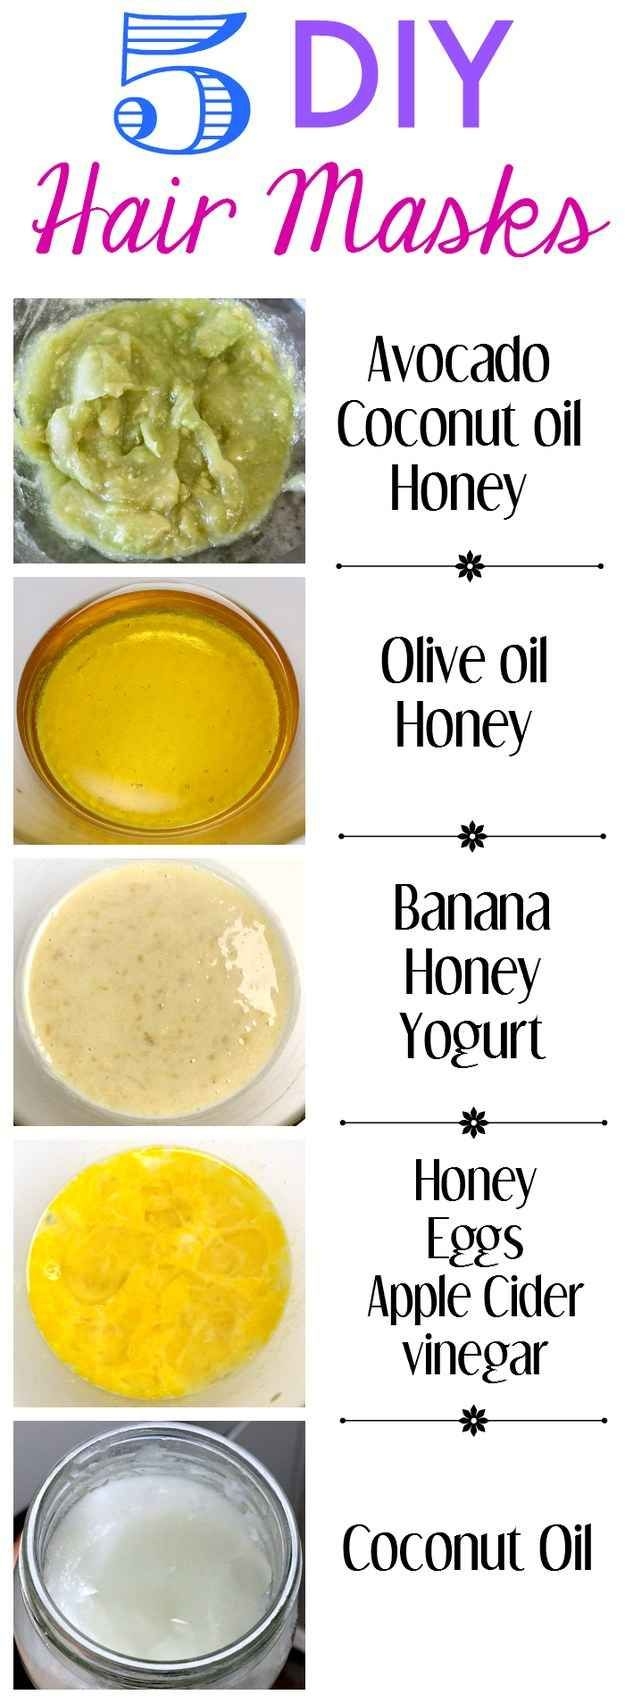 Try a homemade hair mask.